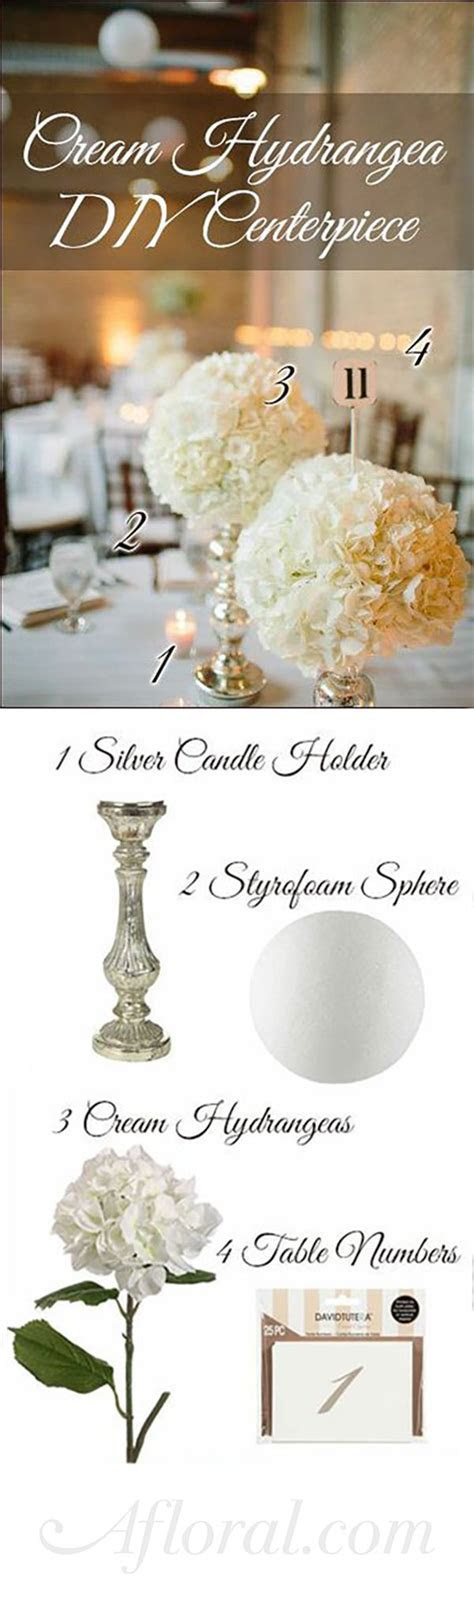 DIY Hydrangea Centerpiece ideas for your wedding reception